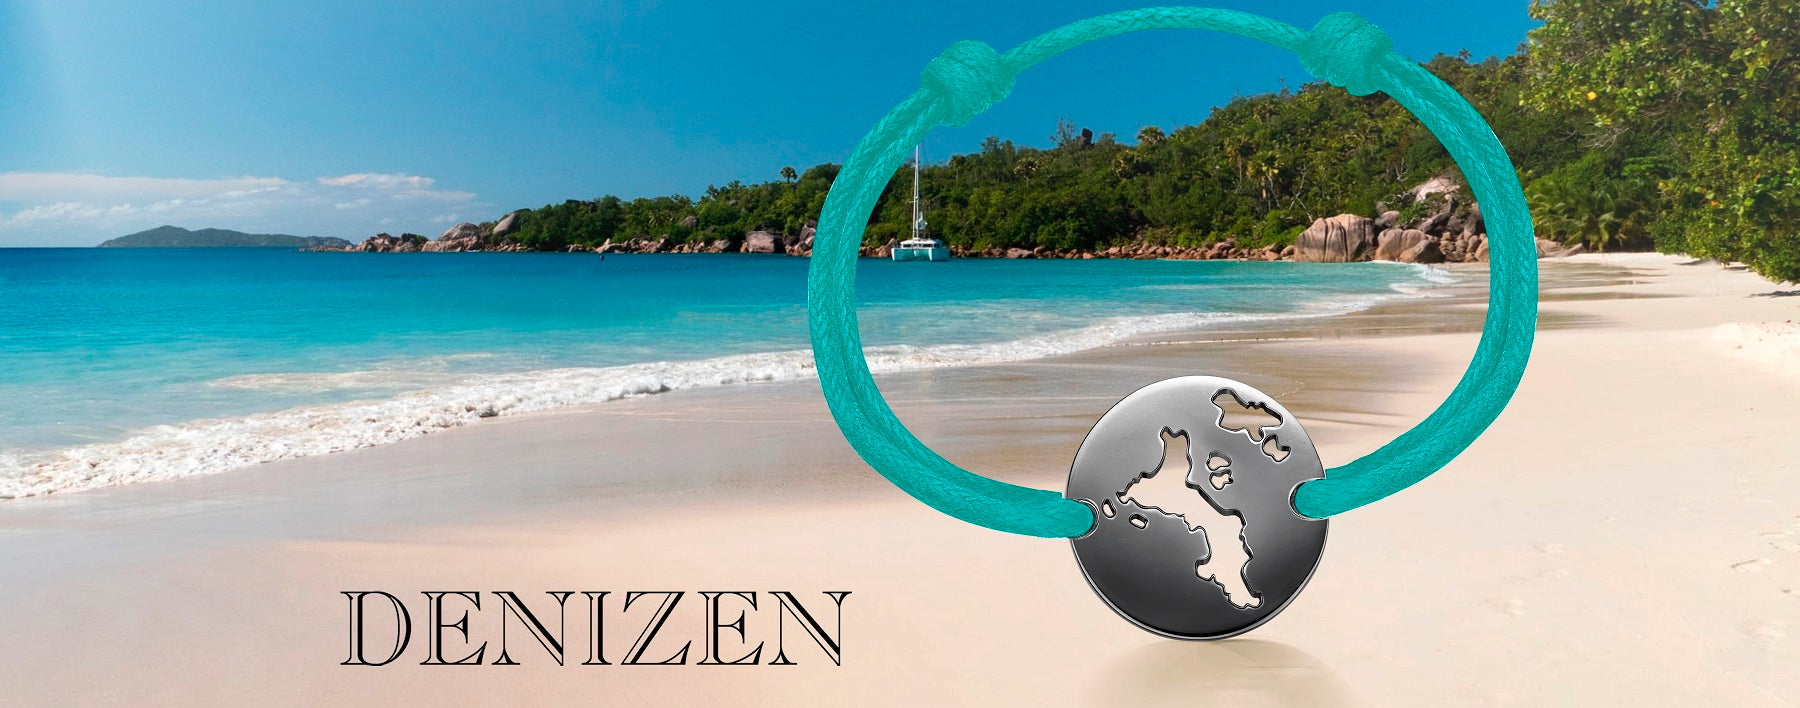 DENIZEN bracelet of Seychelles - Black Moon style